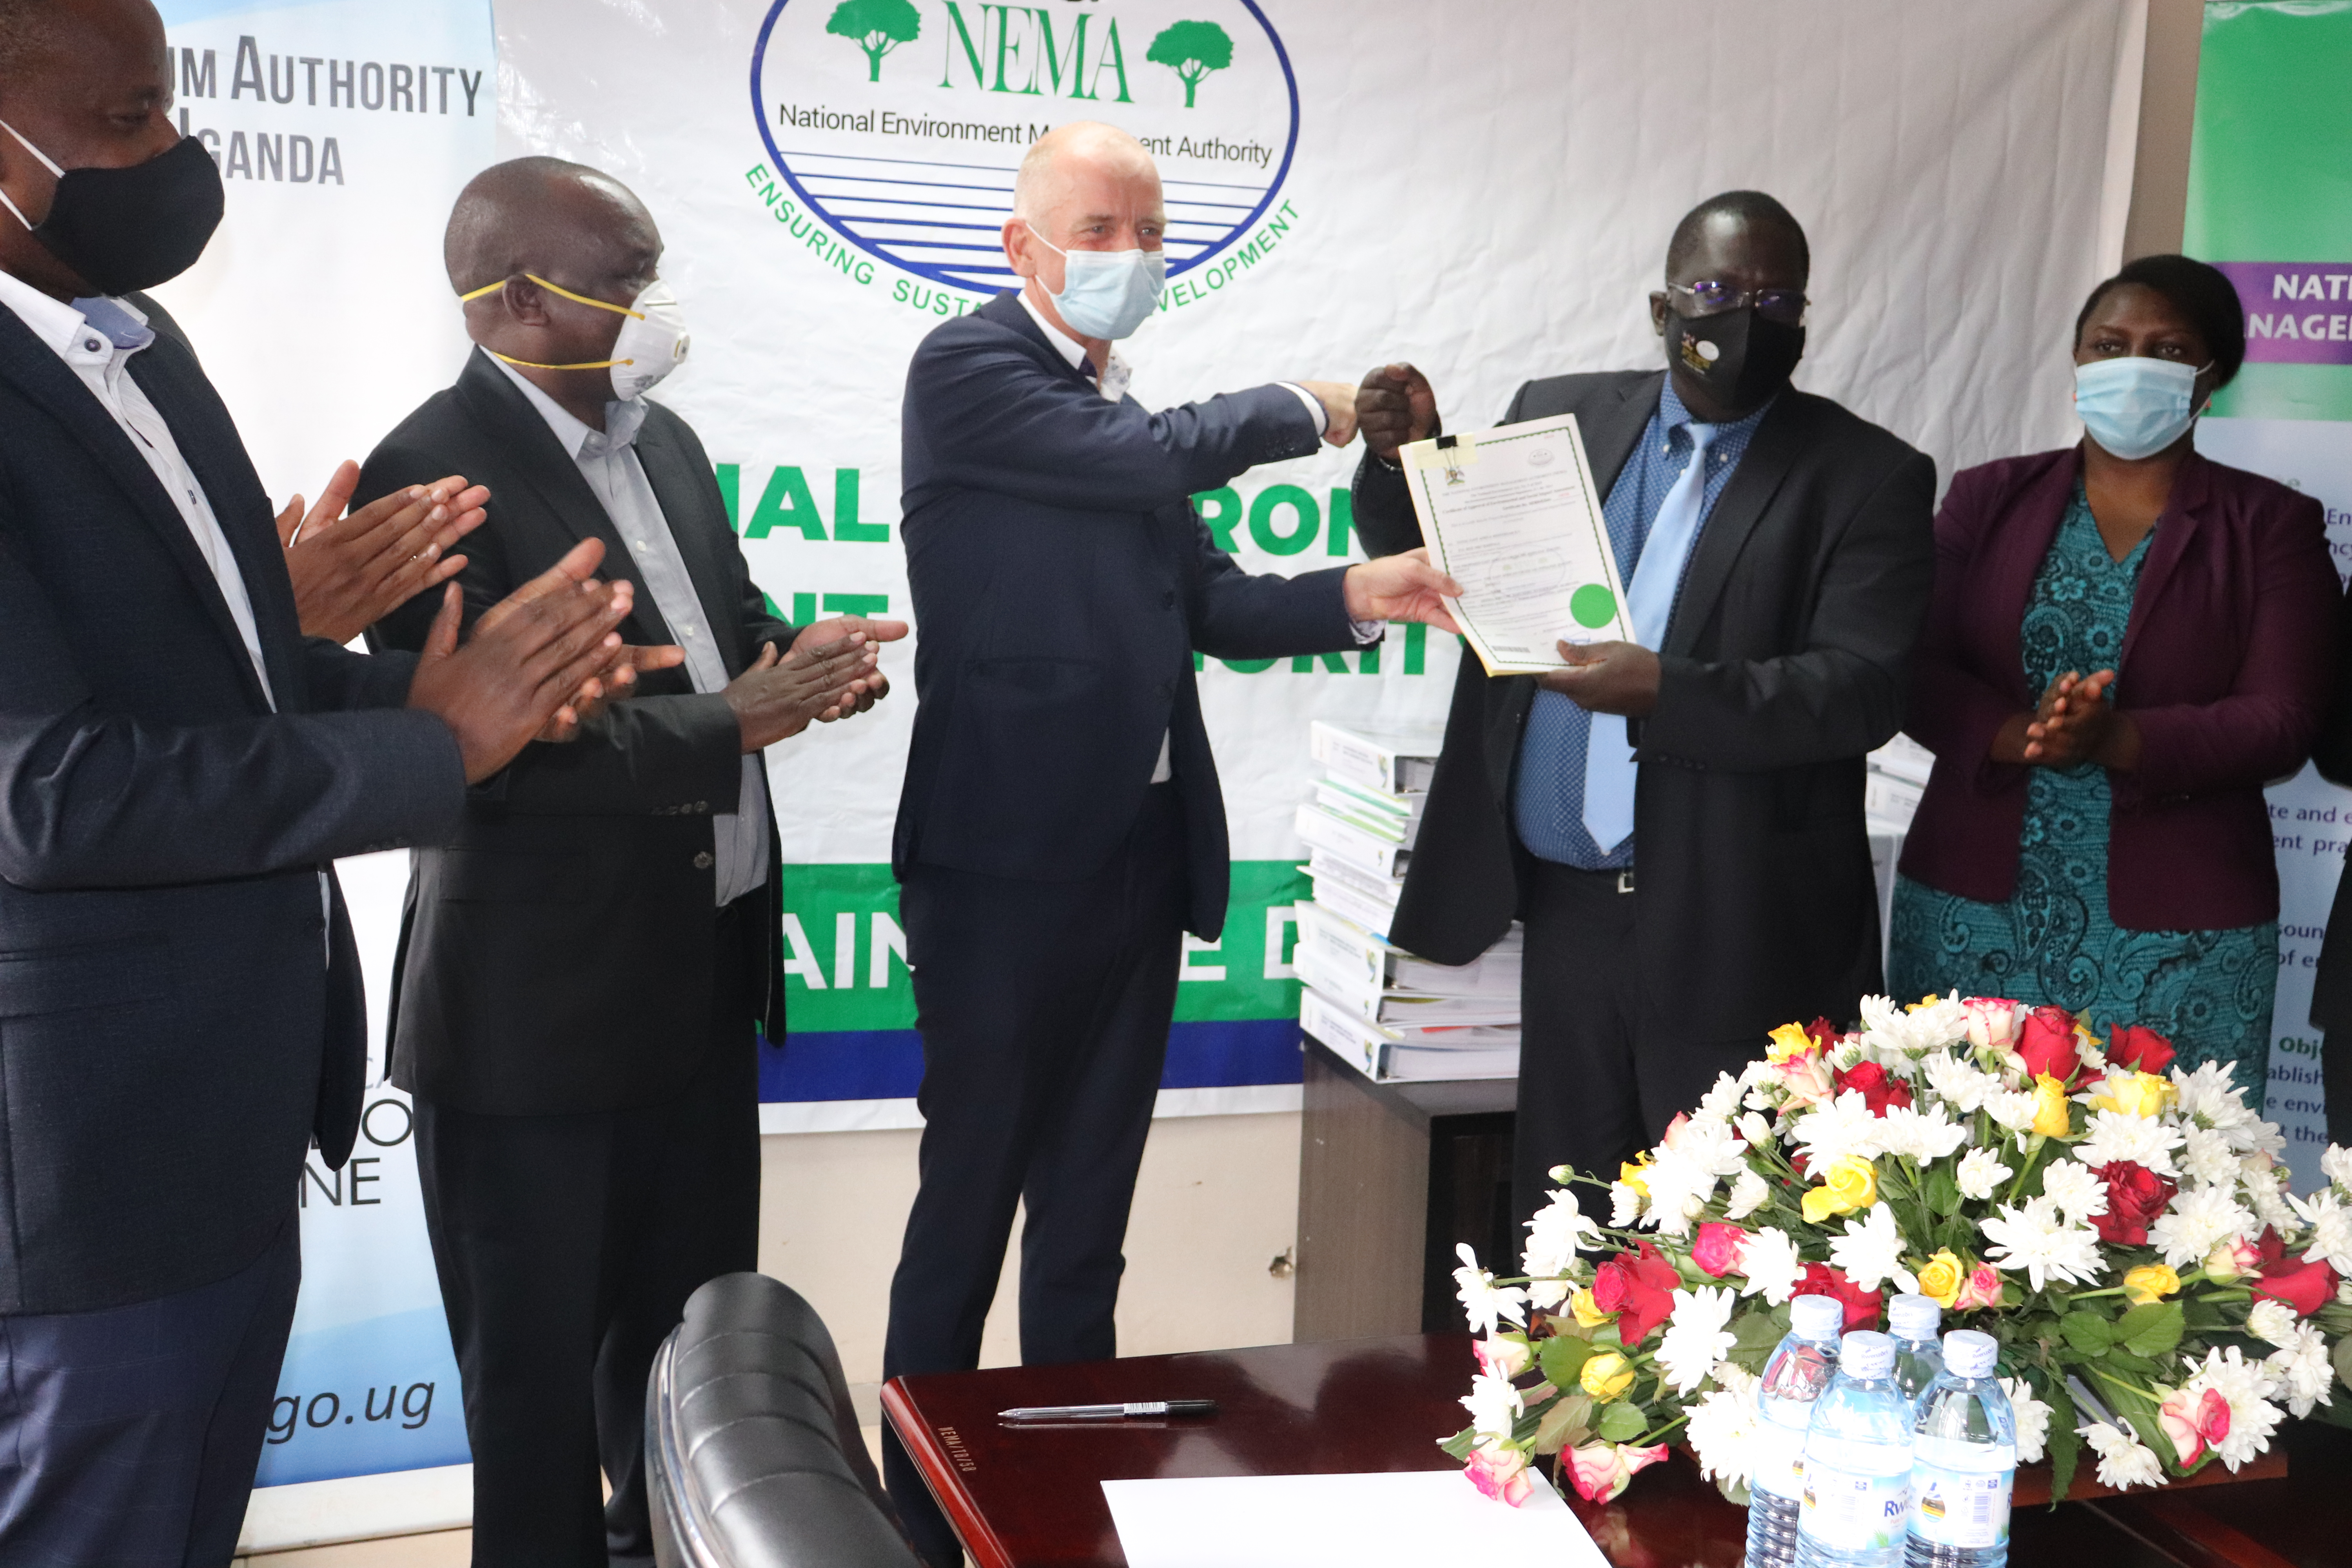 1_Martin-TiffenThird-Left-General-Manager-East-African-Crude-Oil-Pipeline-Project-EACOP-receives-ESIA-certificate-from-Dr.-Tom-Okurut-Second-Right-ED-NEMA